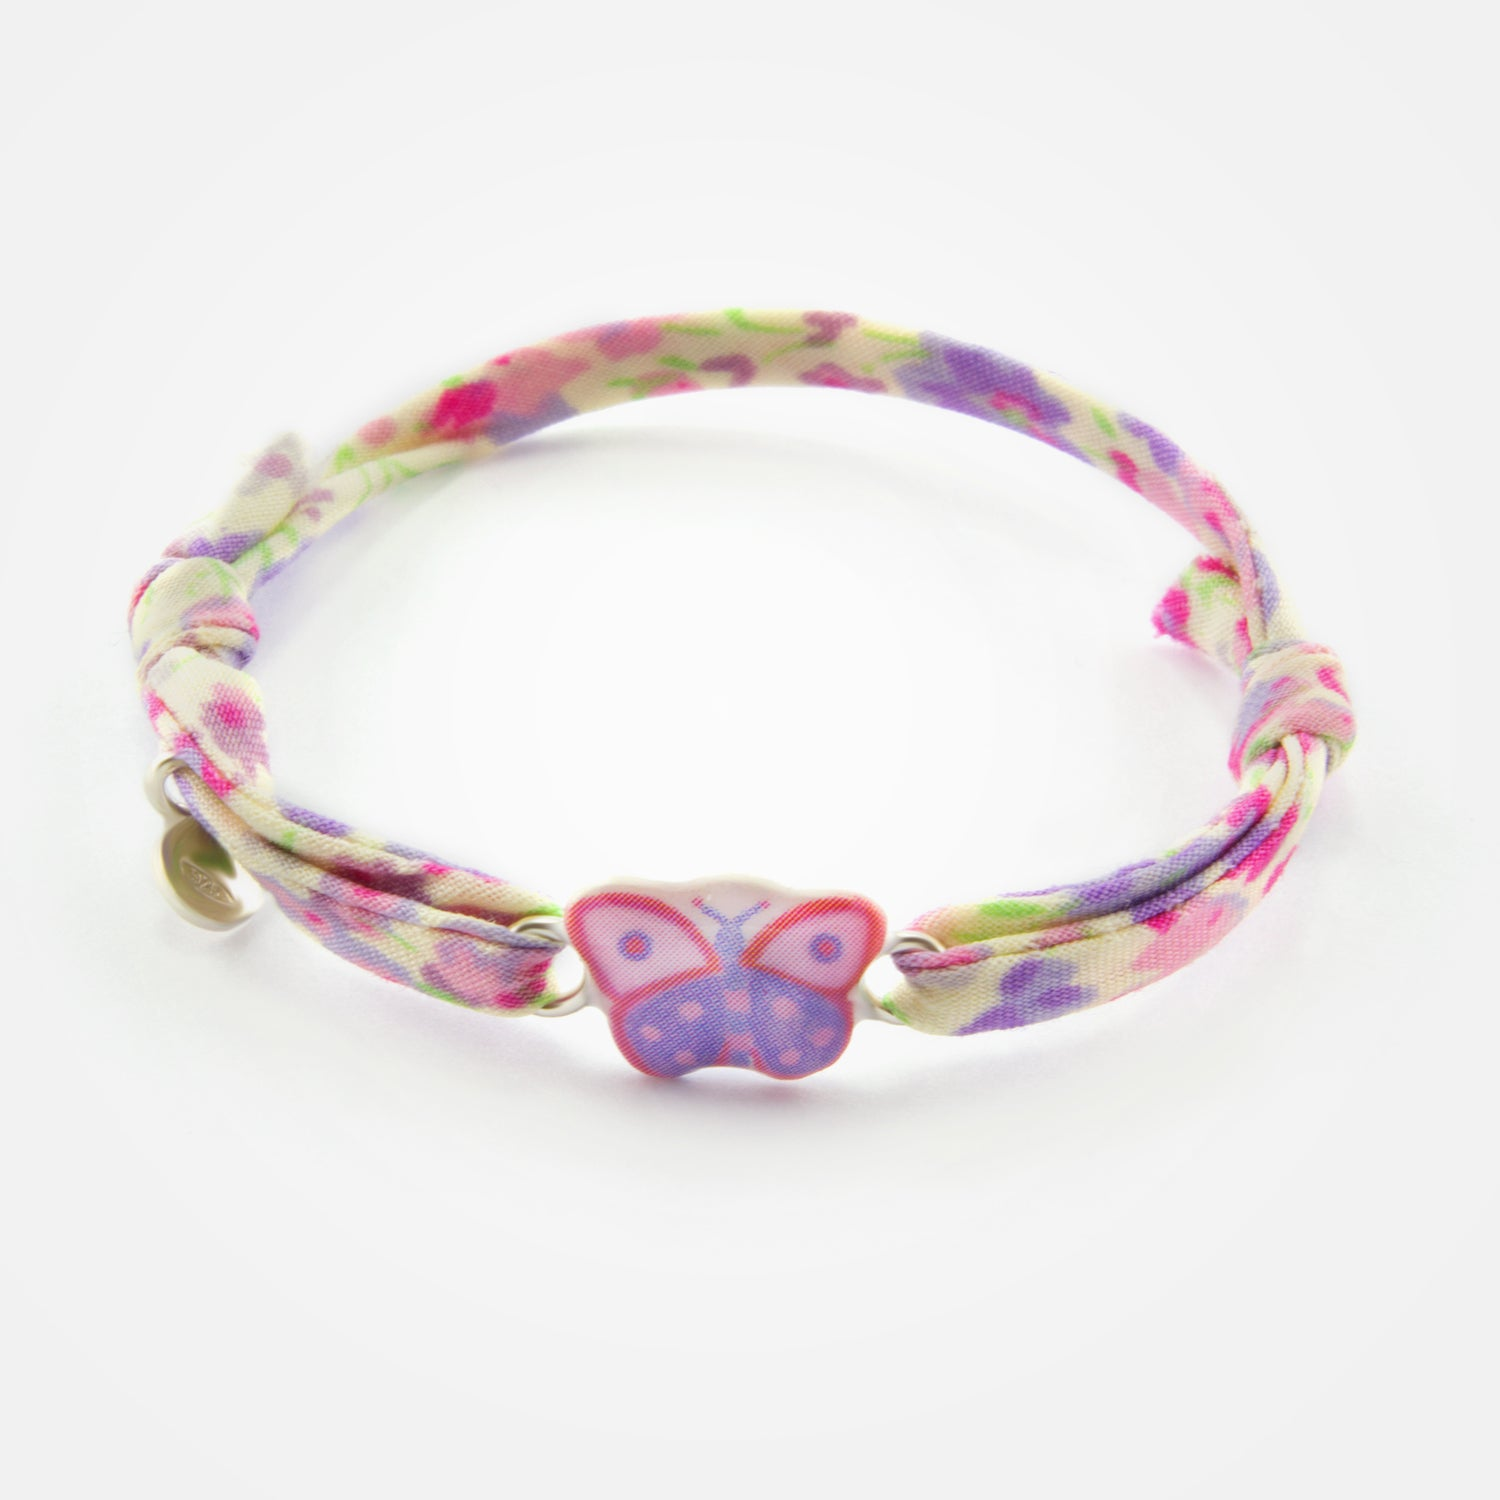 Butterfly Ribbon Bracelet Var 2 by Ribambelle